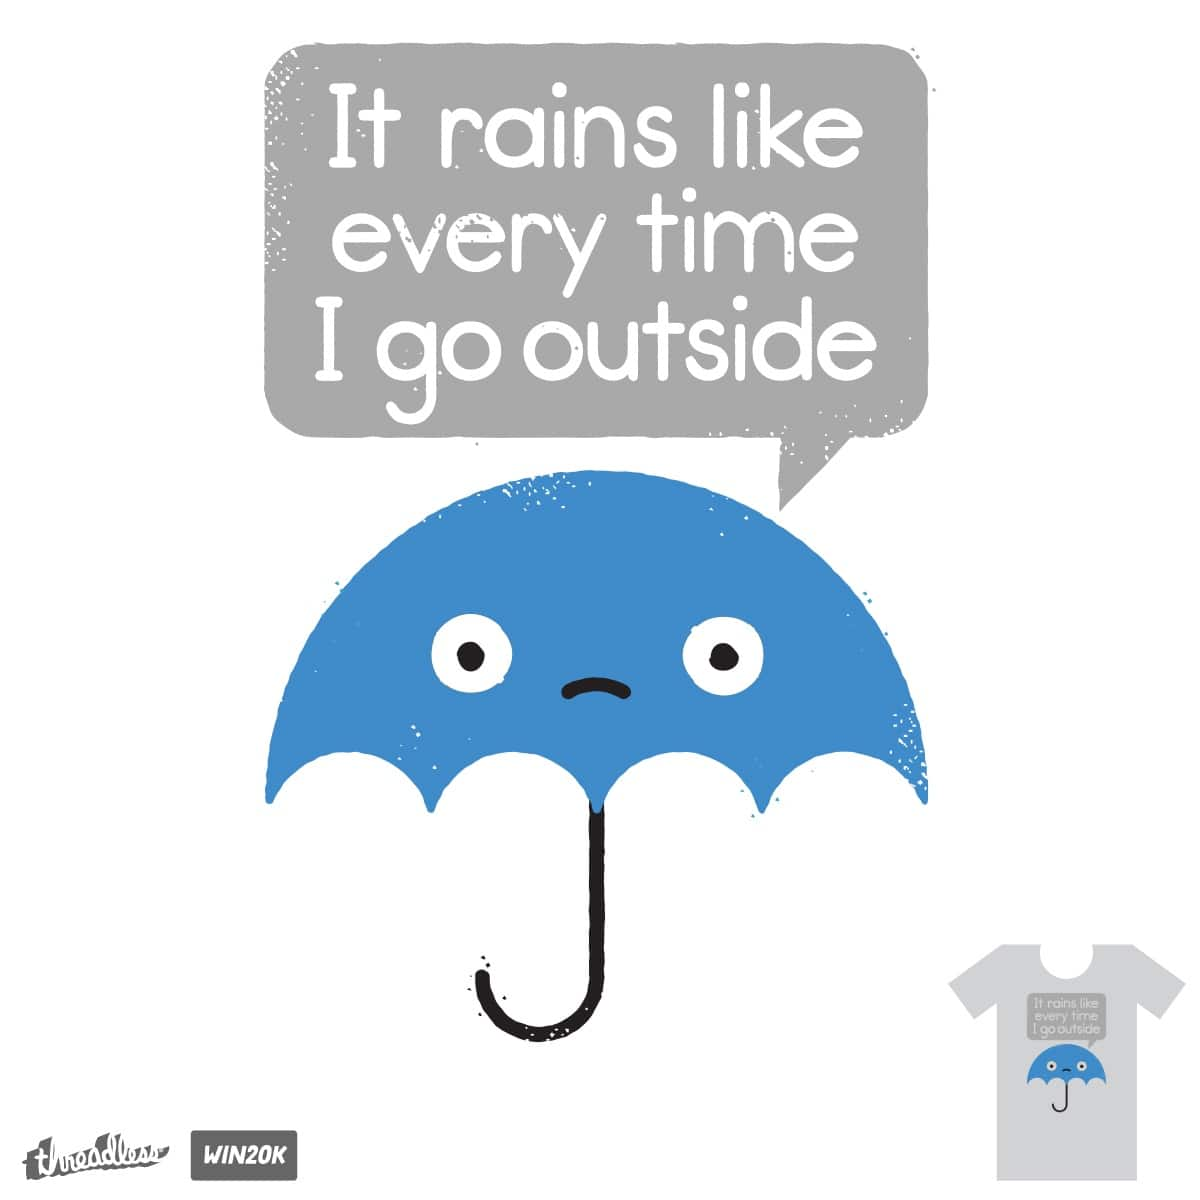 Umbrellativity by DRO72 on Threadless